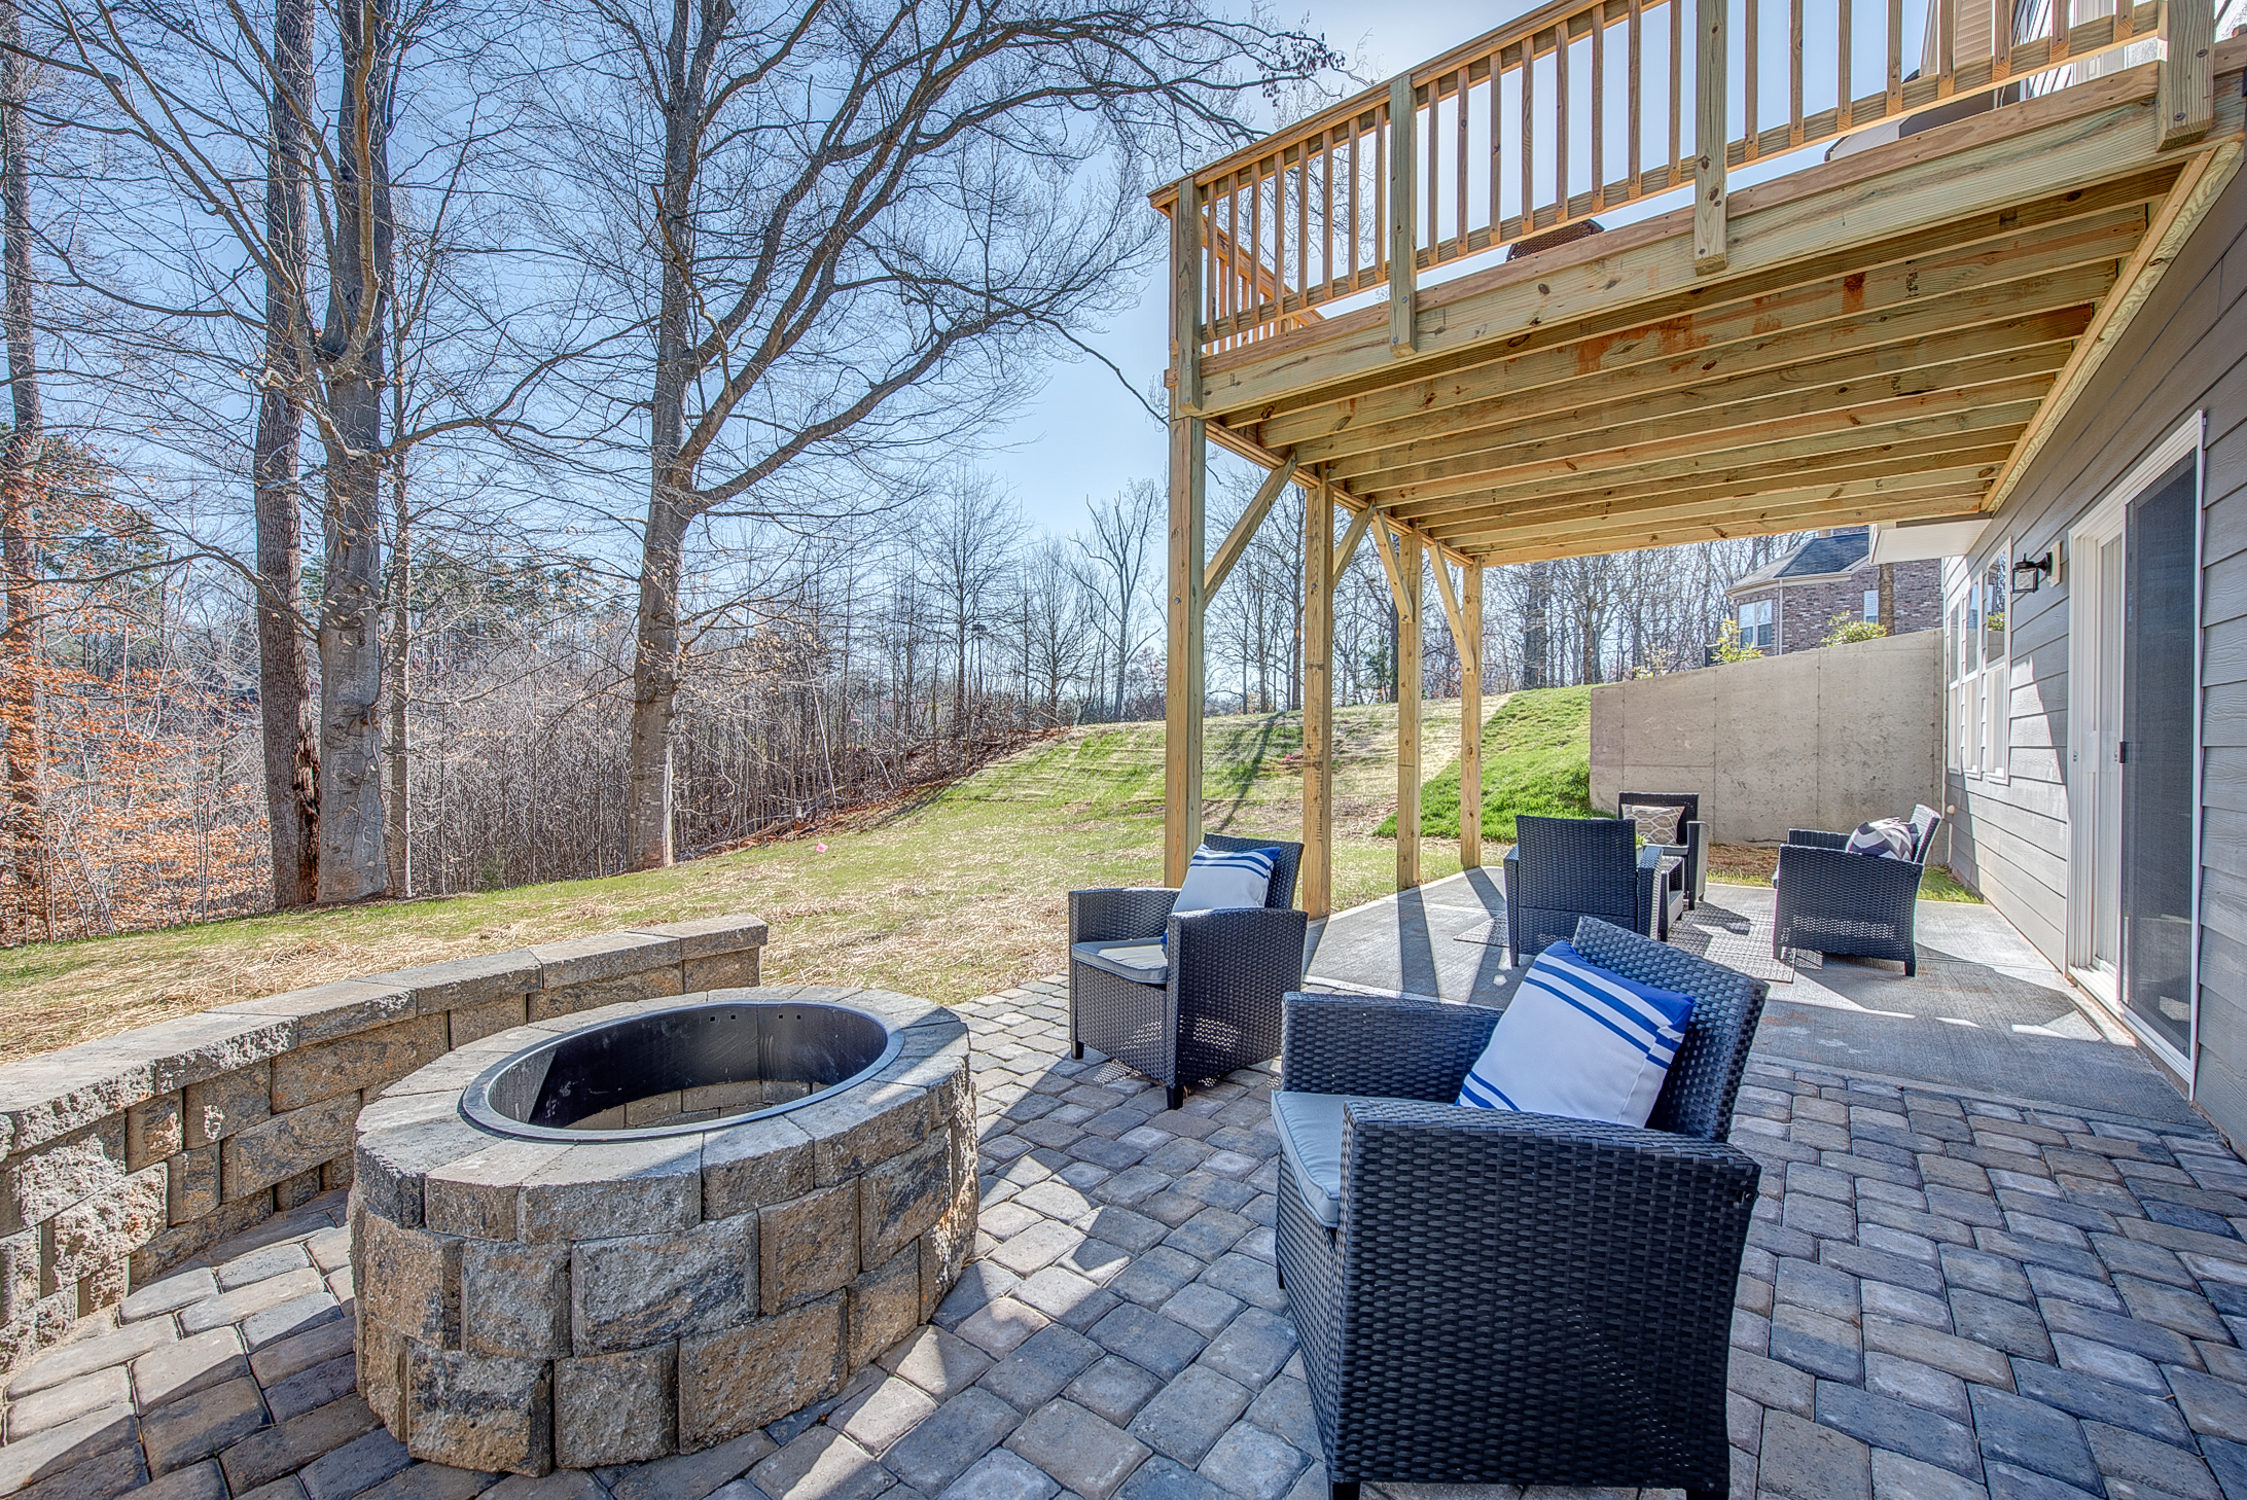 104-bushney-loop-mooresville-print-038-36-patio-firepit-2247x1500-300dpi_33628707331_o.jpg